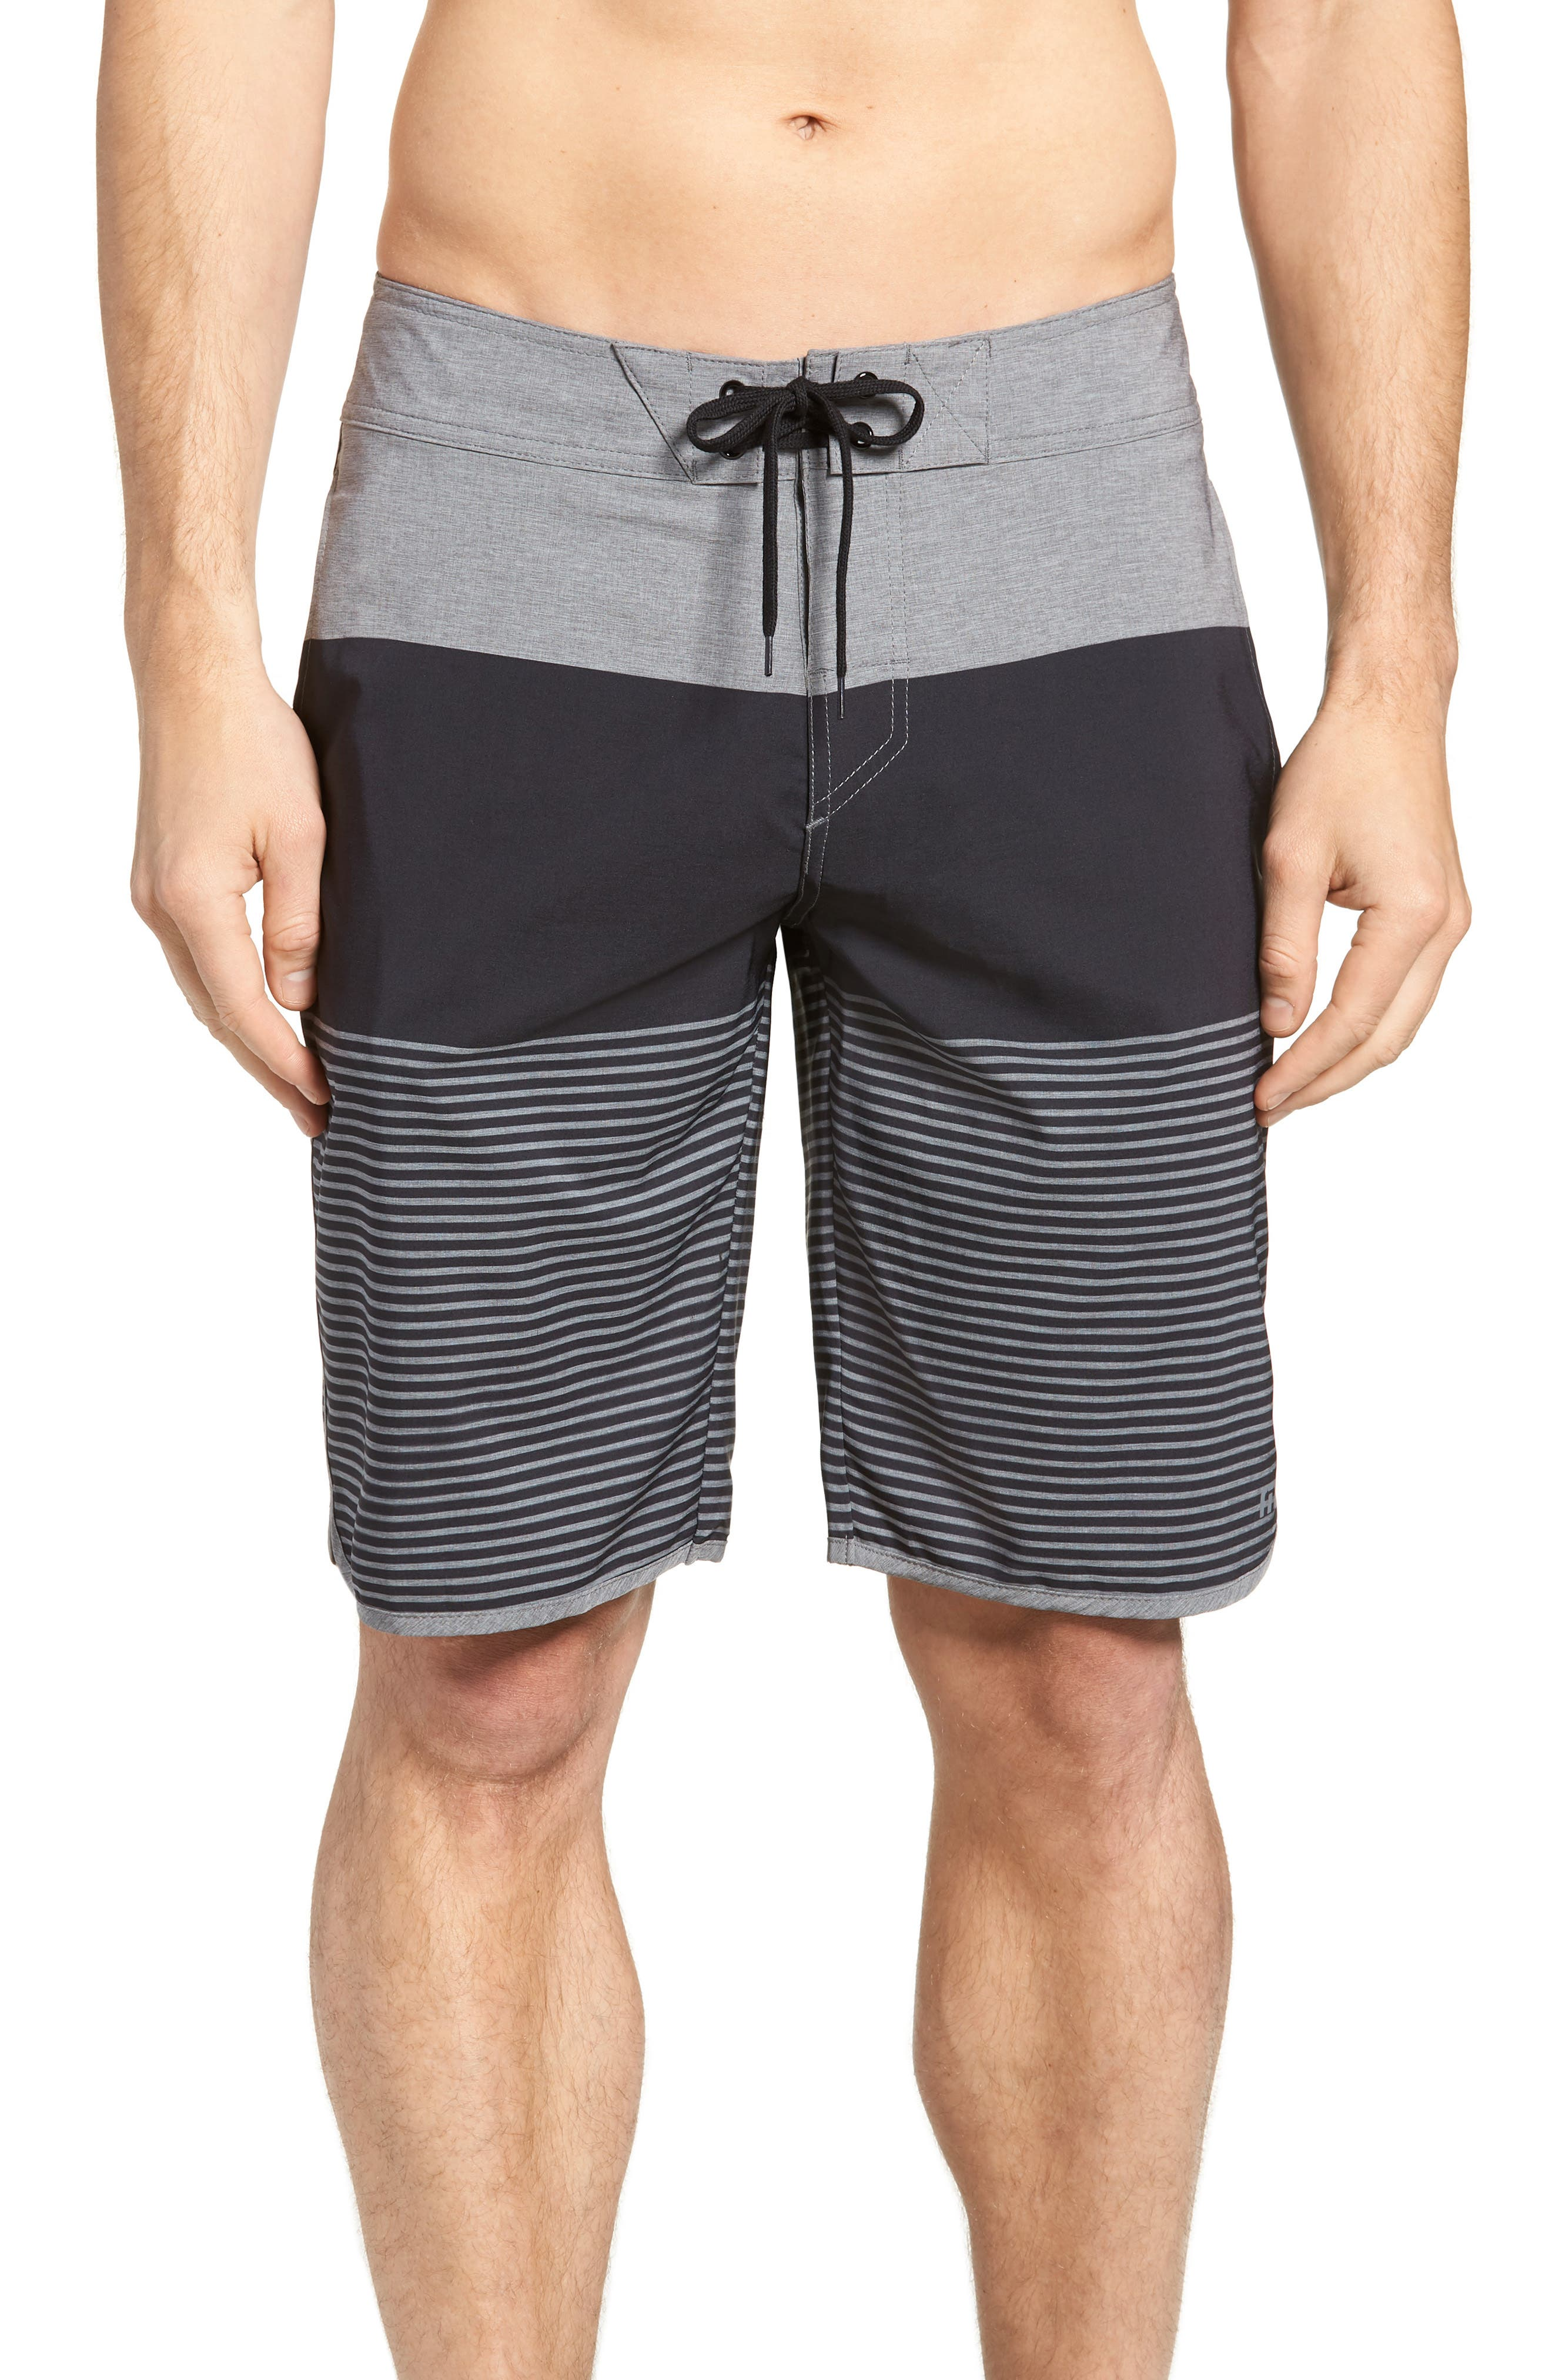 Claim It Regular Fit Board Shorts,                         Main,                         color, 001